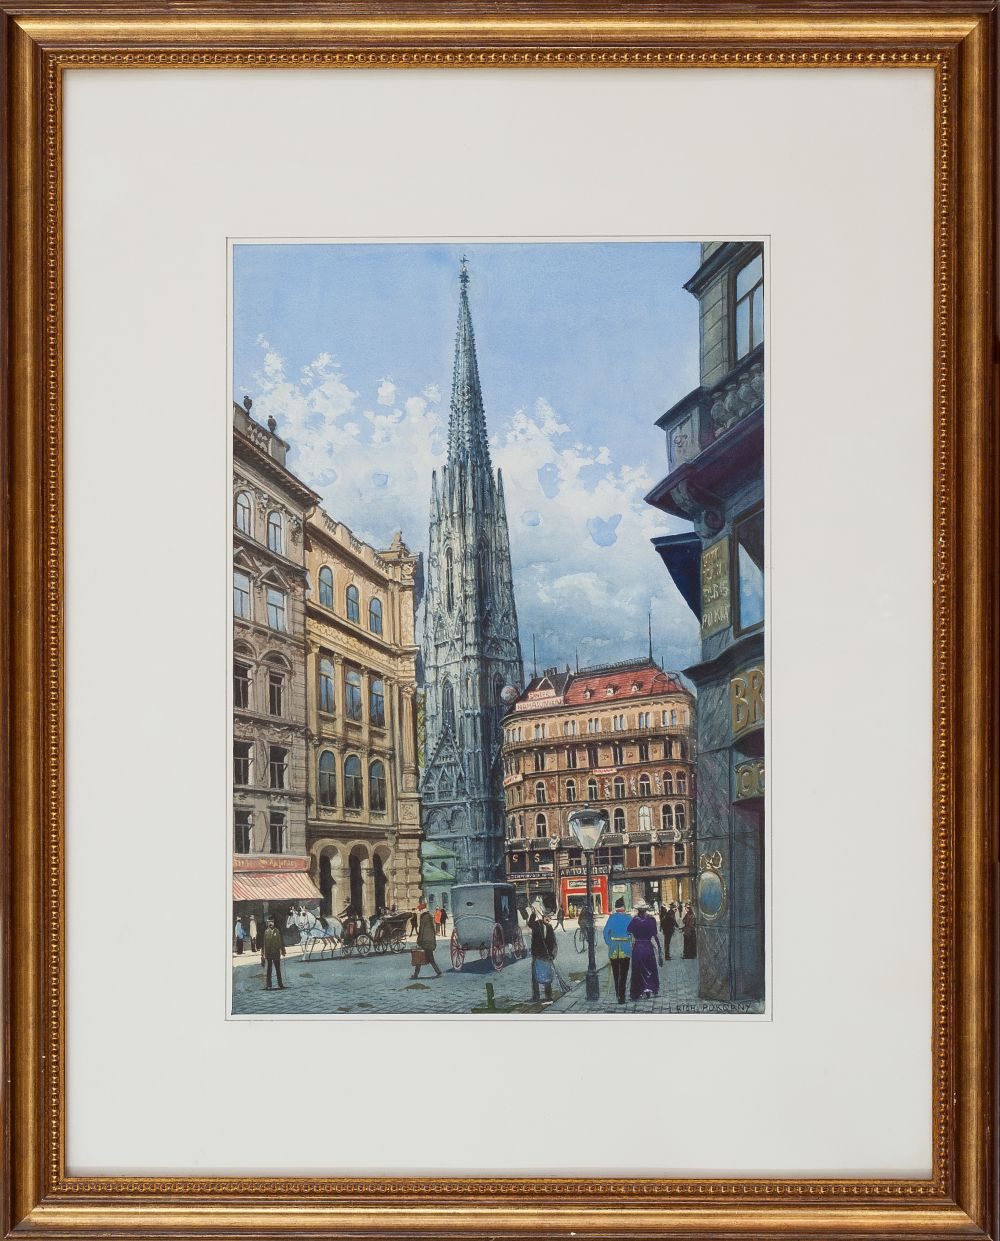 #73 Richard Pokorny Graben Street with a View of St. Stephen